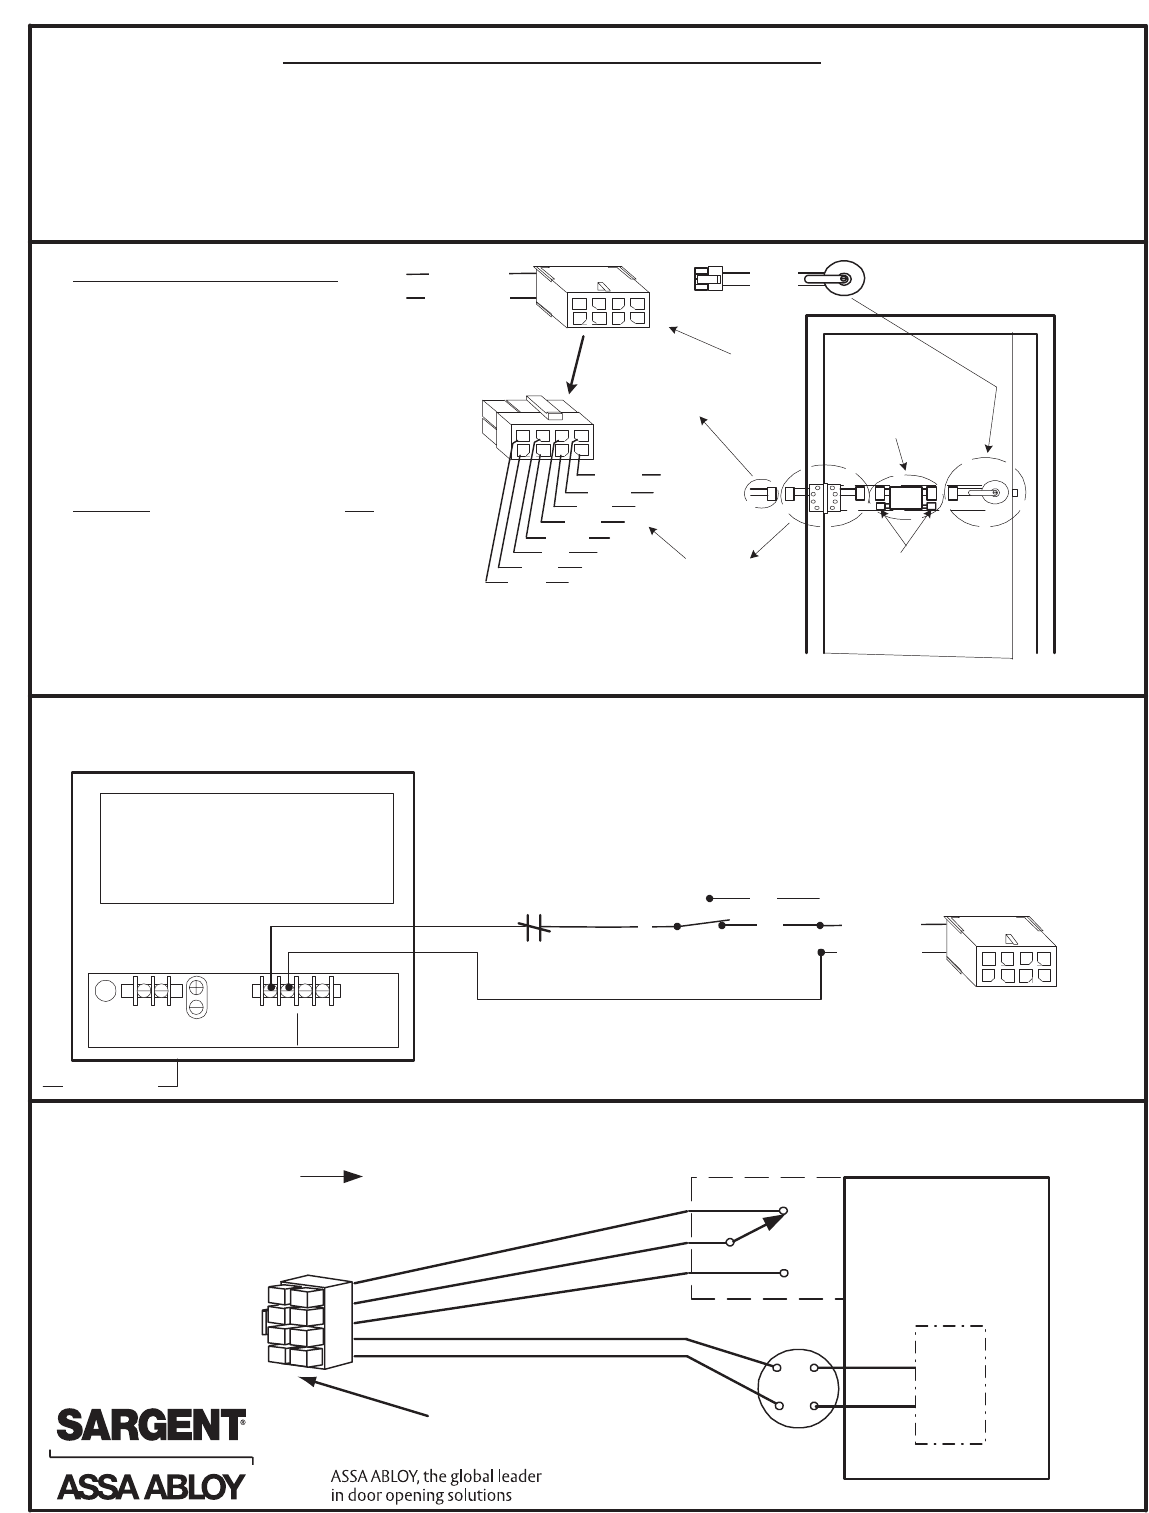 Sargent A6761c Installation Instructions For 10g70 10g71 Electro Odes Wiring Diagram Sample Series Solenoid Locks With A 12vdc Or 24vdc Regulated And Filtered Power Supply